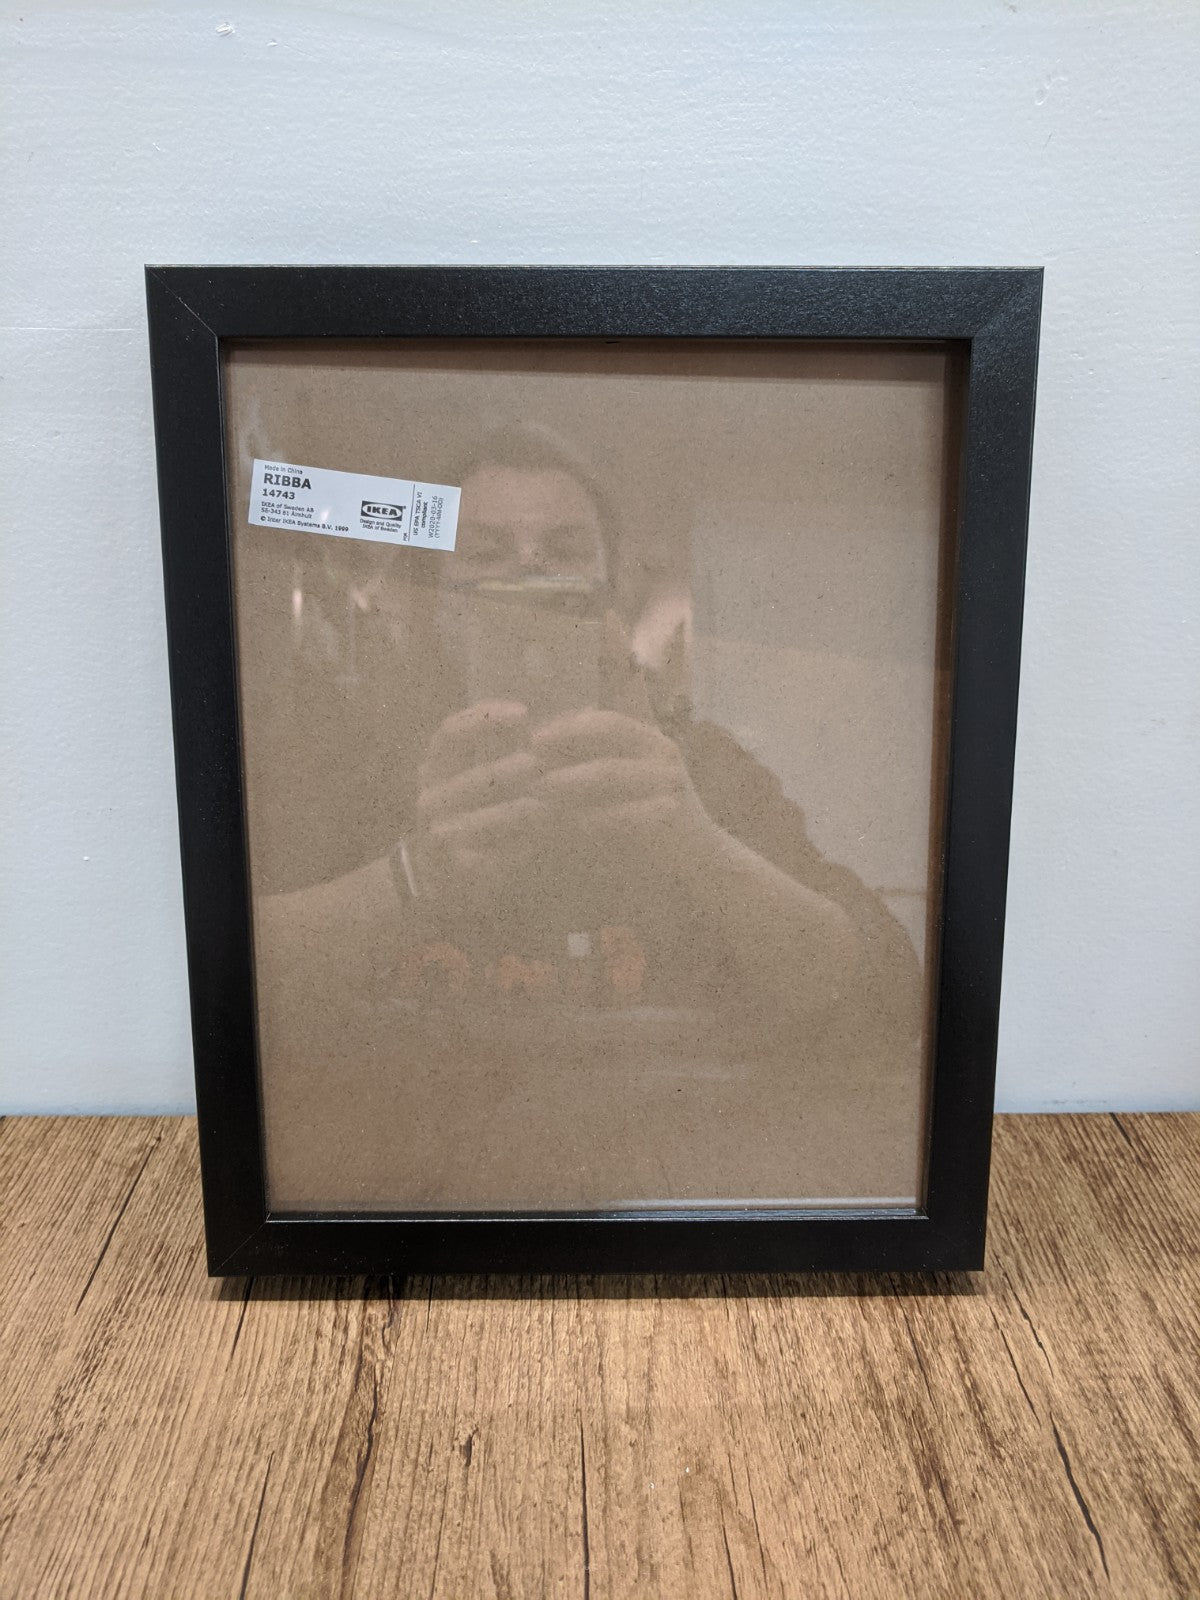 Ikea RIBBA 8X10 Black Picture Frame